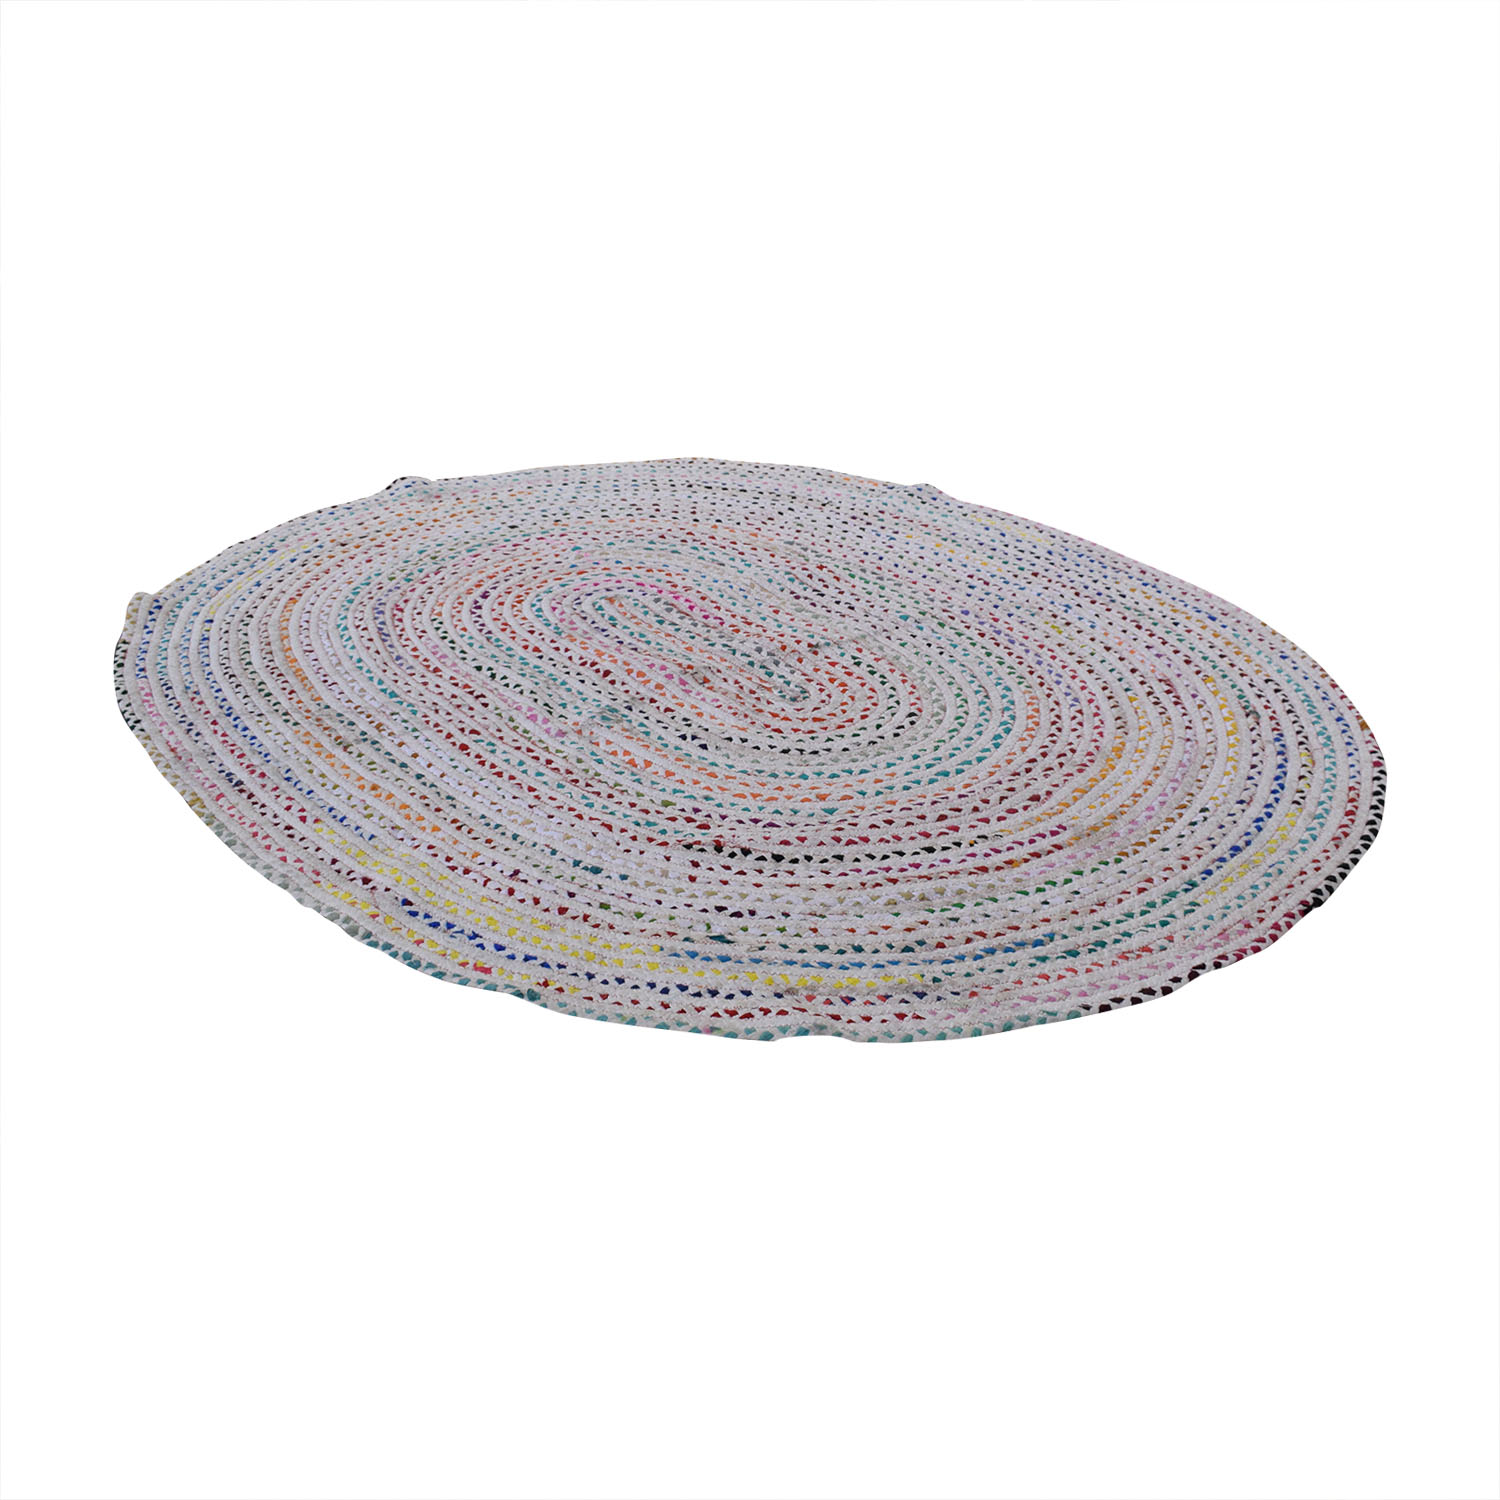 Oval Woven Rug pa